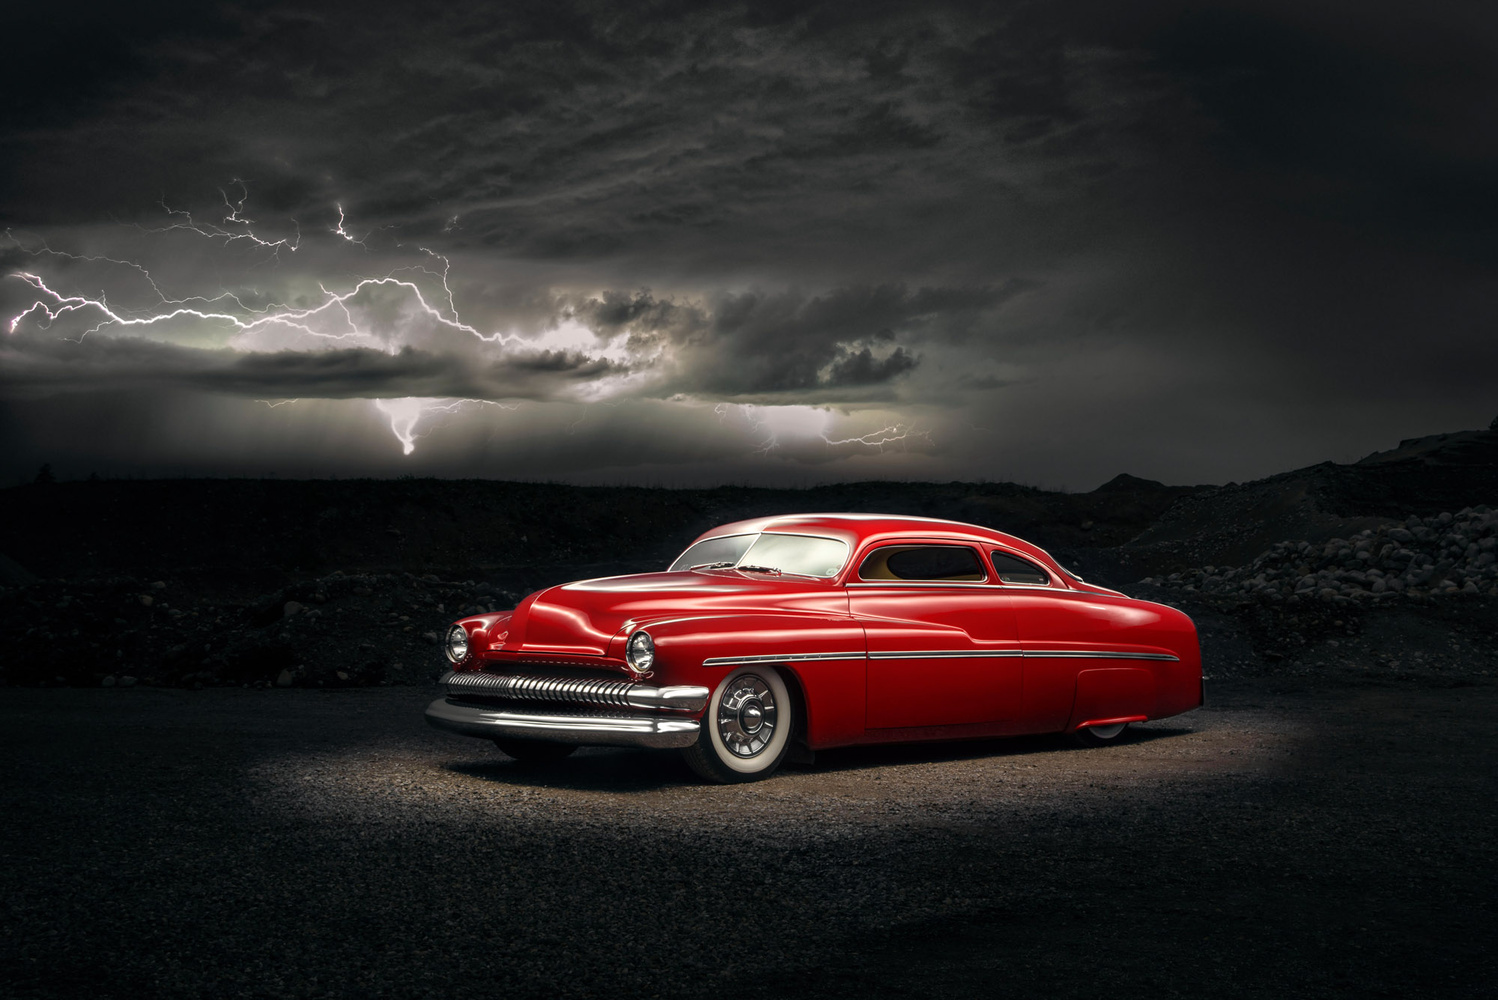 Mercury under lightning by Kenny Kroeker